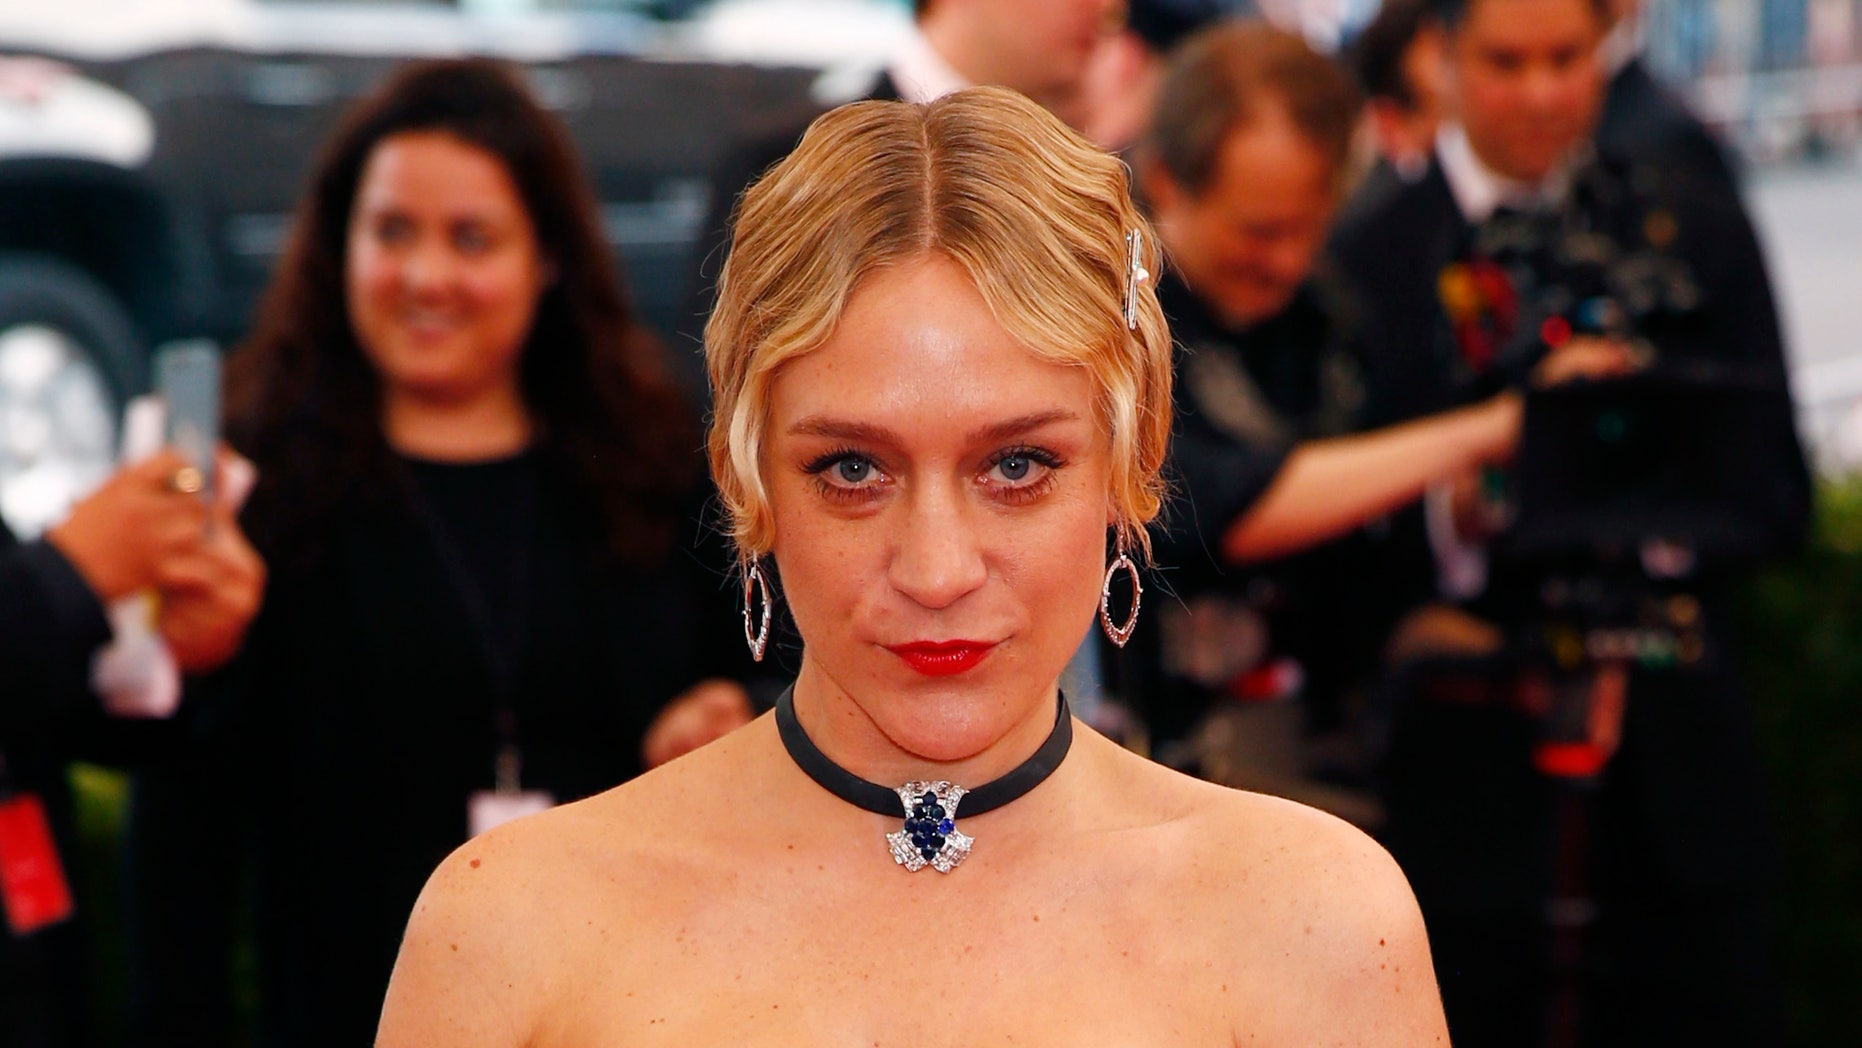 """Chloe Sevigny arrives at the Metropolitan Museum of Art Costume Institute Gala 2015 celebrating the opening of """"China: Through the Looking Glass,"""" in Manhattan, New York May 4, 2015.   REUTERS/Lucas Jackson - RTX1BK11"""